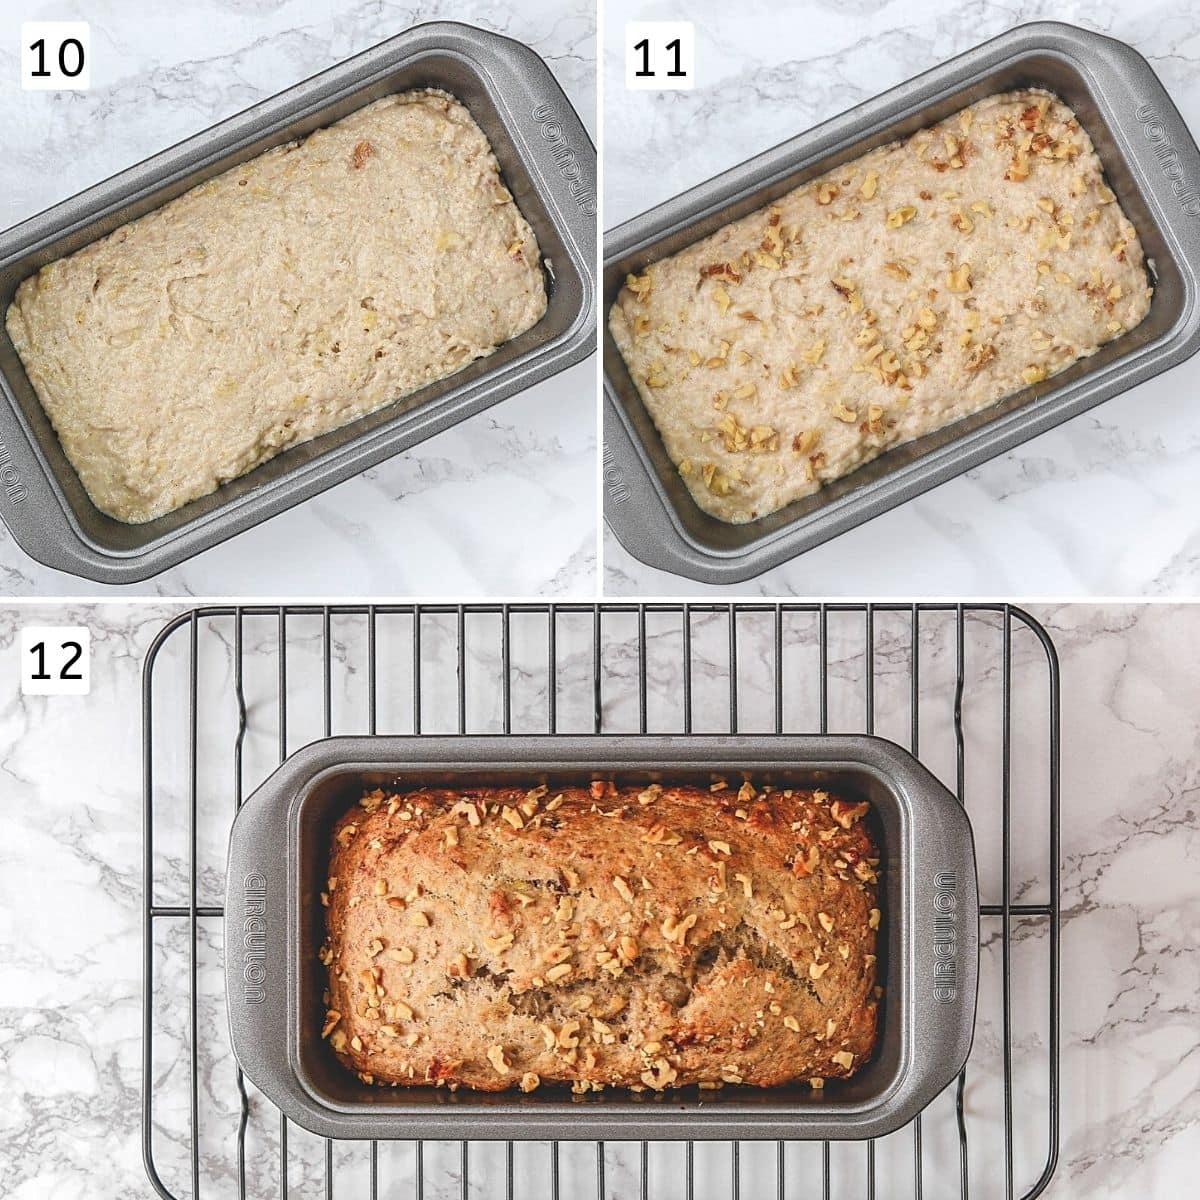 Collage of 3 steps showing batter into the pan, sprinkling walnuts and baked bread.